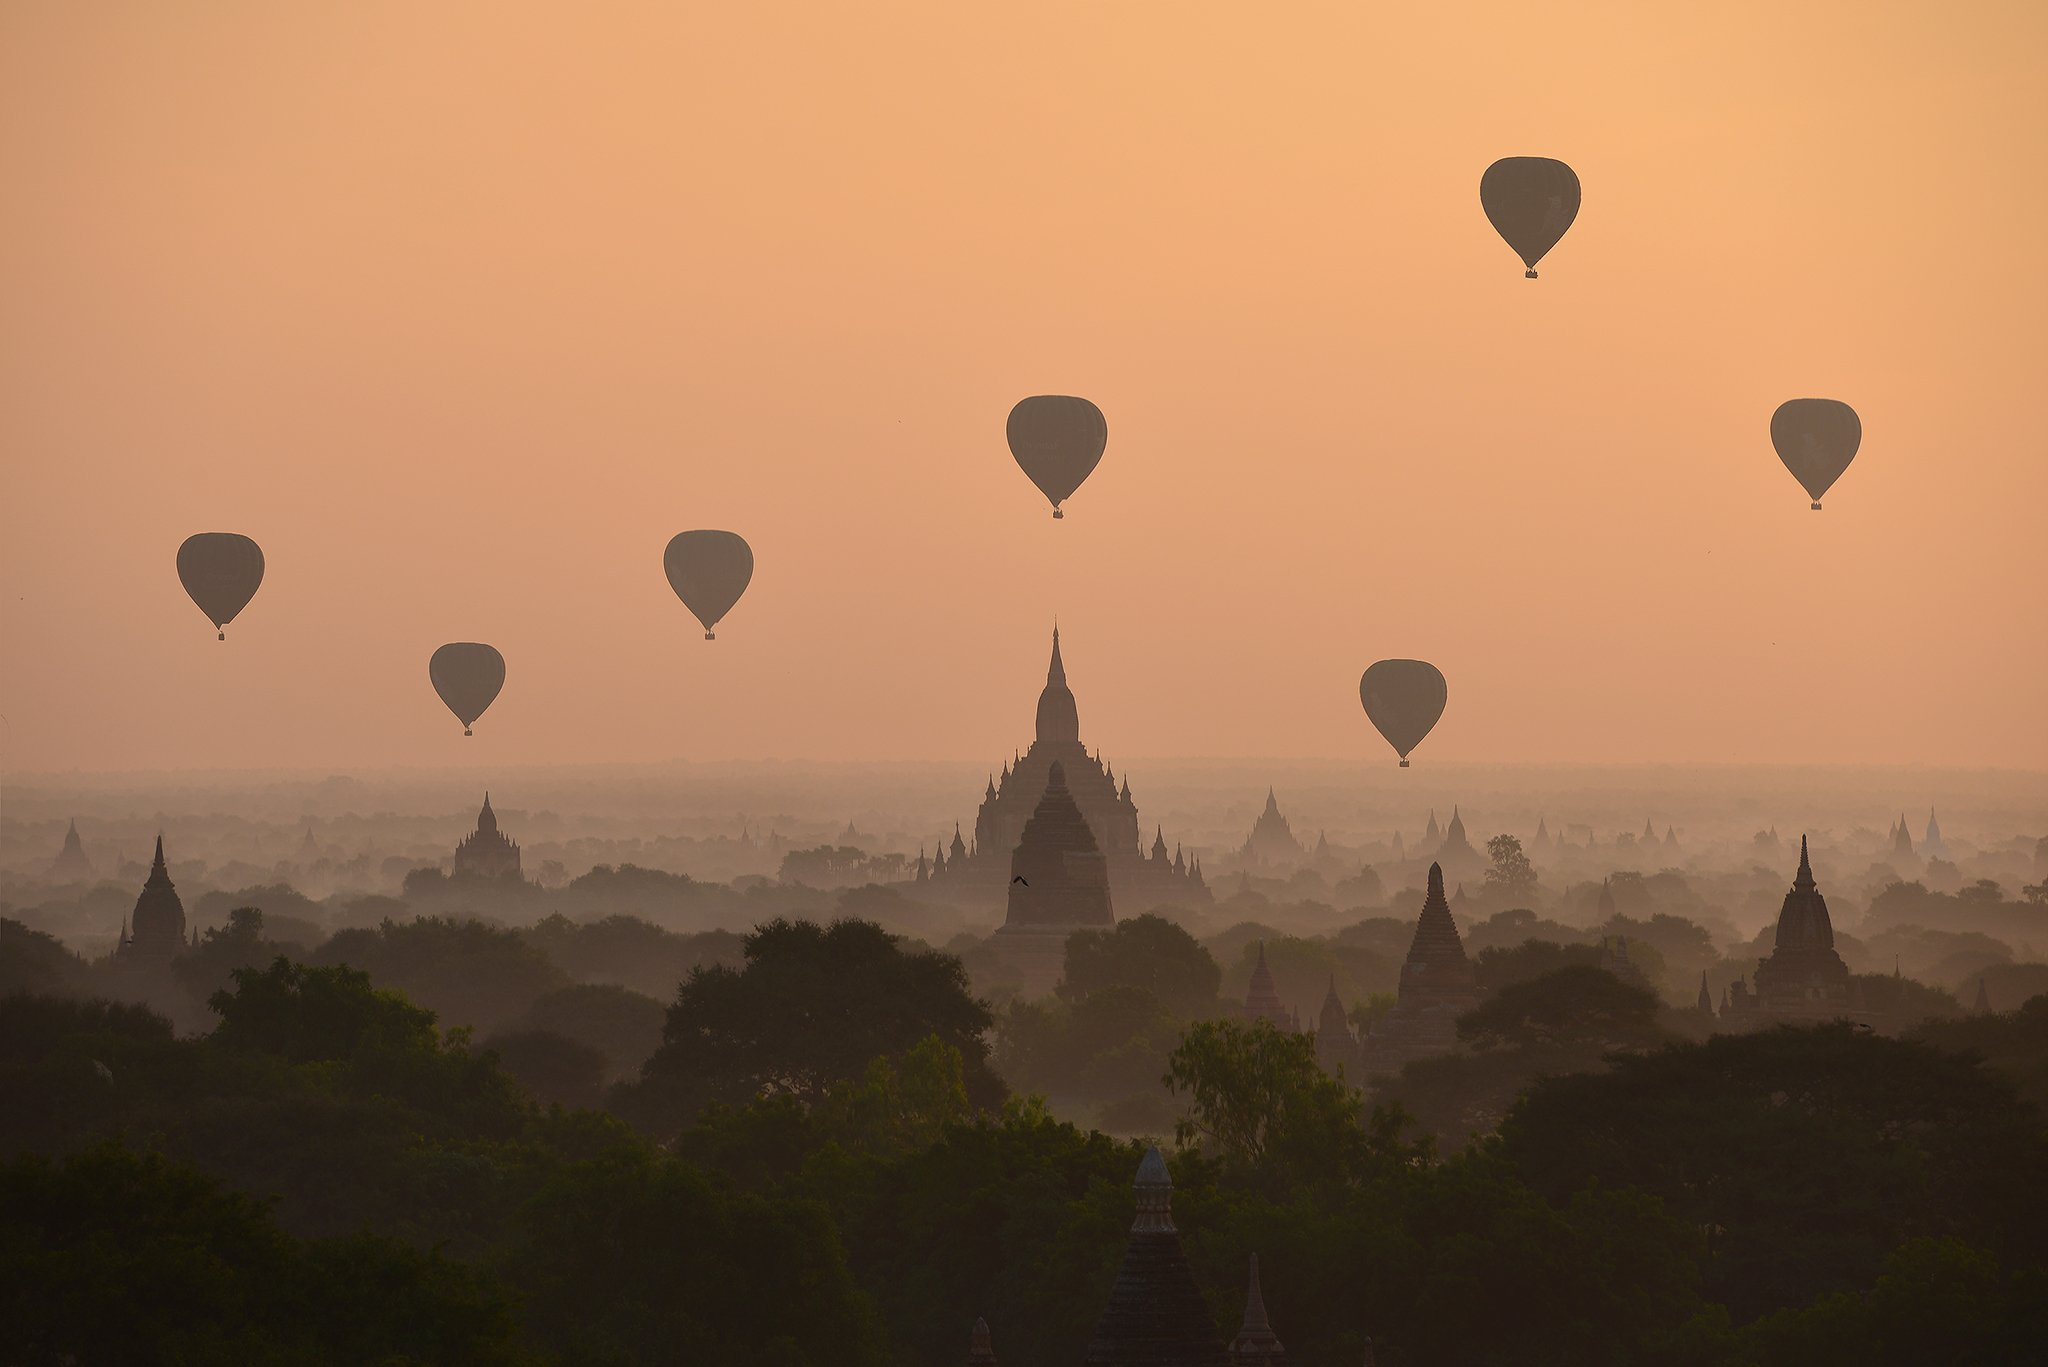 Weather Architecture Bagan Buddhism Built Structure Color Image Flying Fog Horizontal Hot Air Balloon Mid-Air Mode of Transport Mountain Myanmar Nature No People Outdoors Pagoda Photography Silhouette Sky Sunrise - Dawn Temple - Building Transportation Tr, sarawut intarob